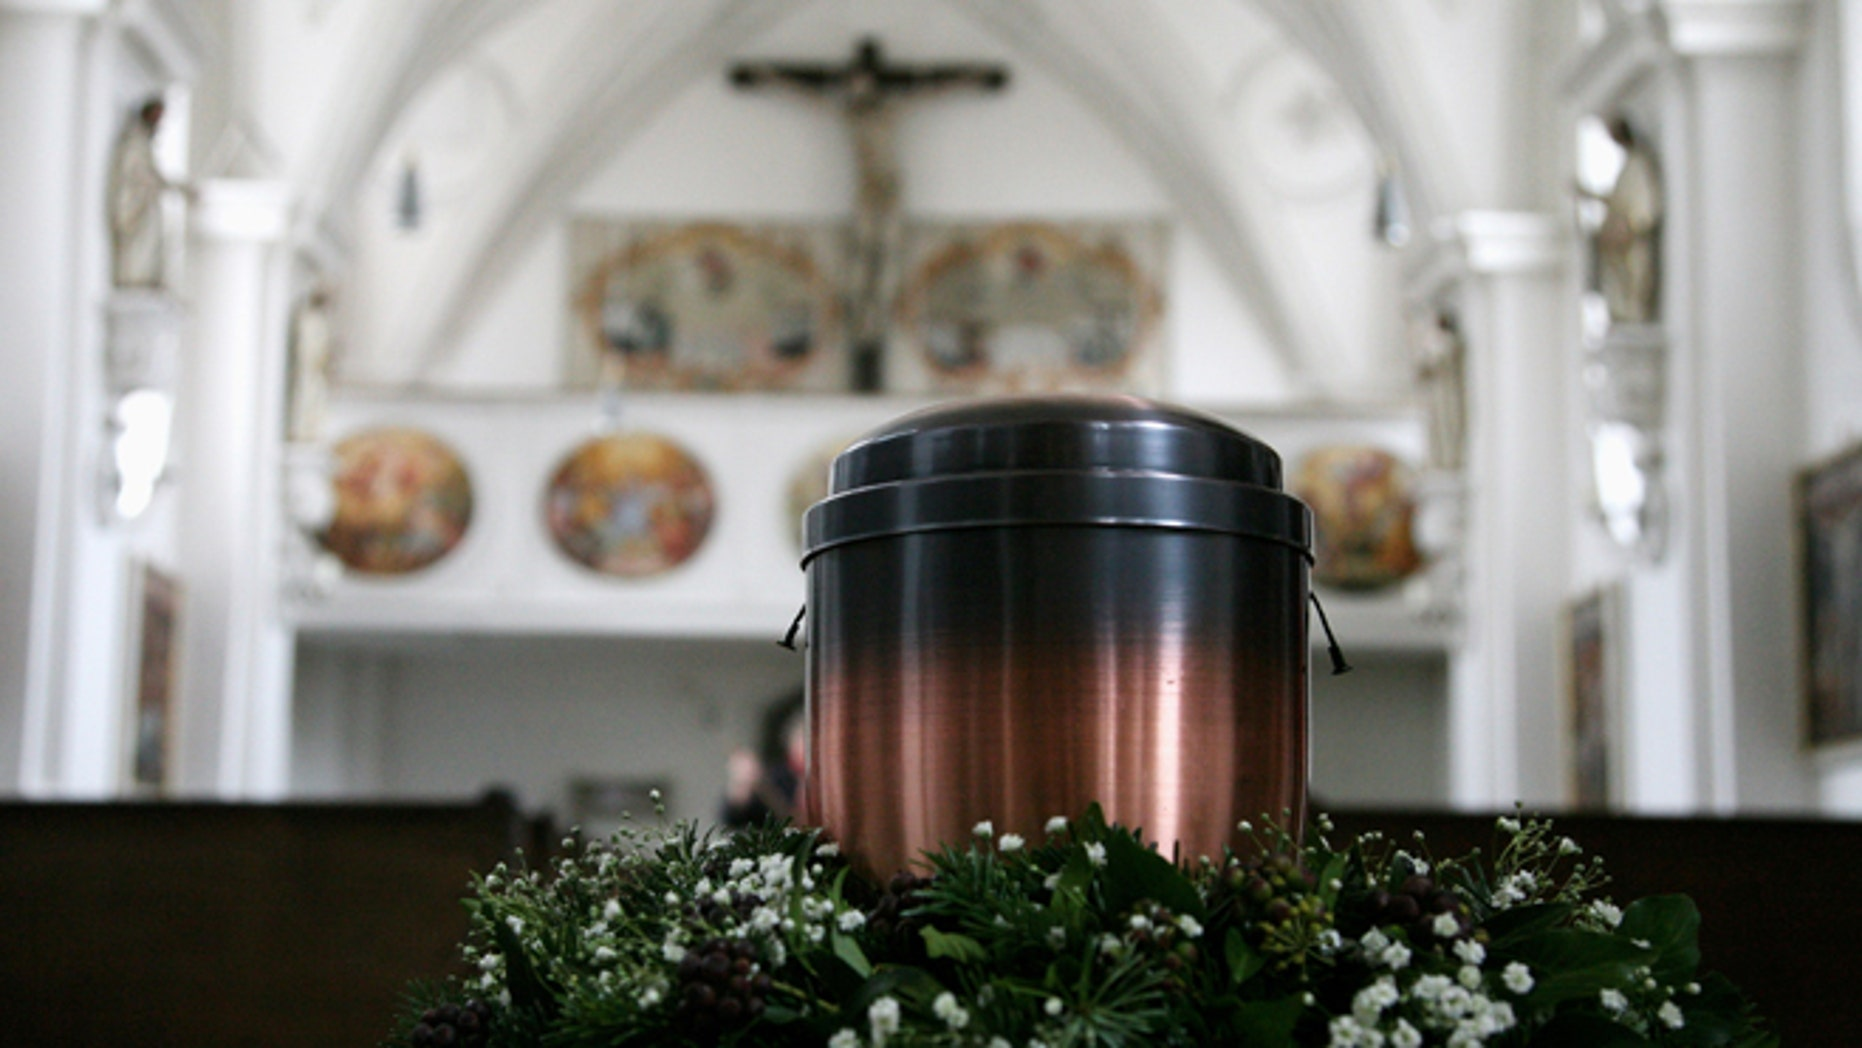 BERNRIED, GERMANY - FEBRUARY 28:  The urn of the defunct writer Lothar-Guenther Buchheim stands in the Hofmarkkirche church on February 28, 2007, in Bernried, Germany. The funeral will take place in the early afternoon.  (Photo by Johannes Simon/Getty Images)